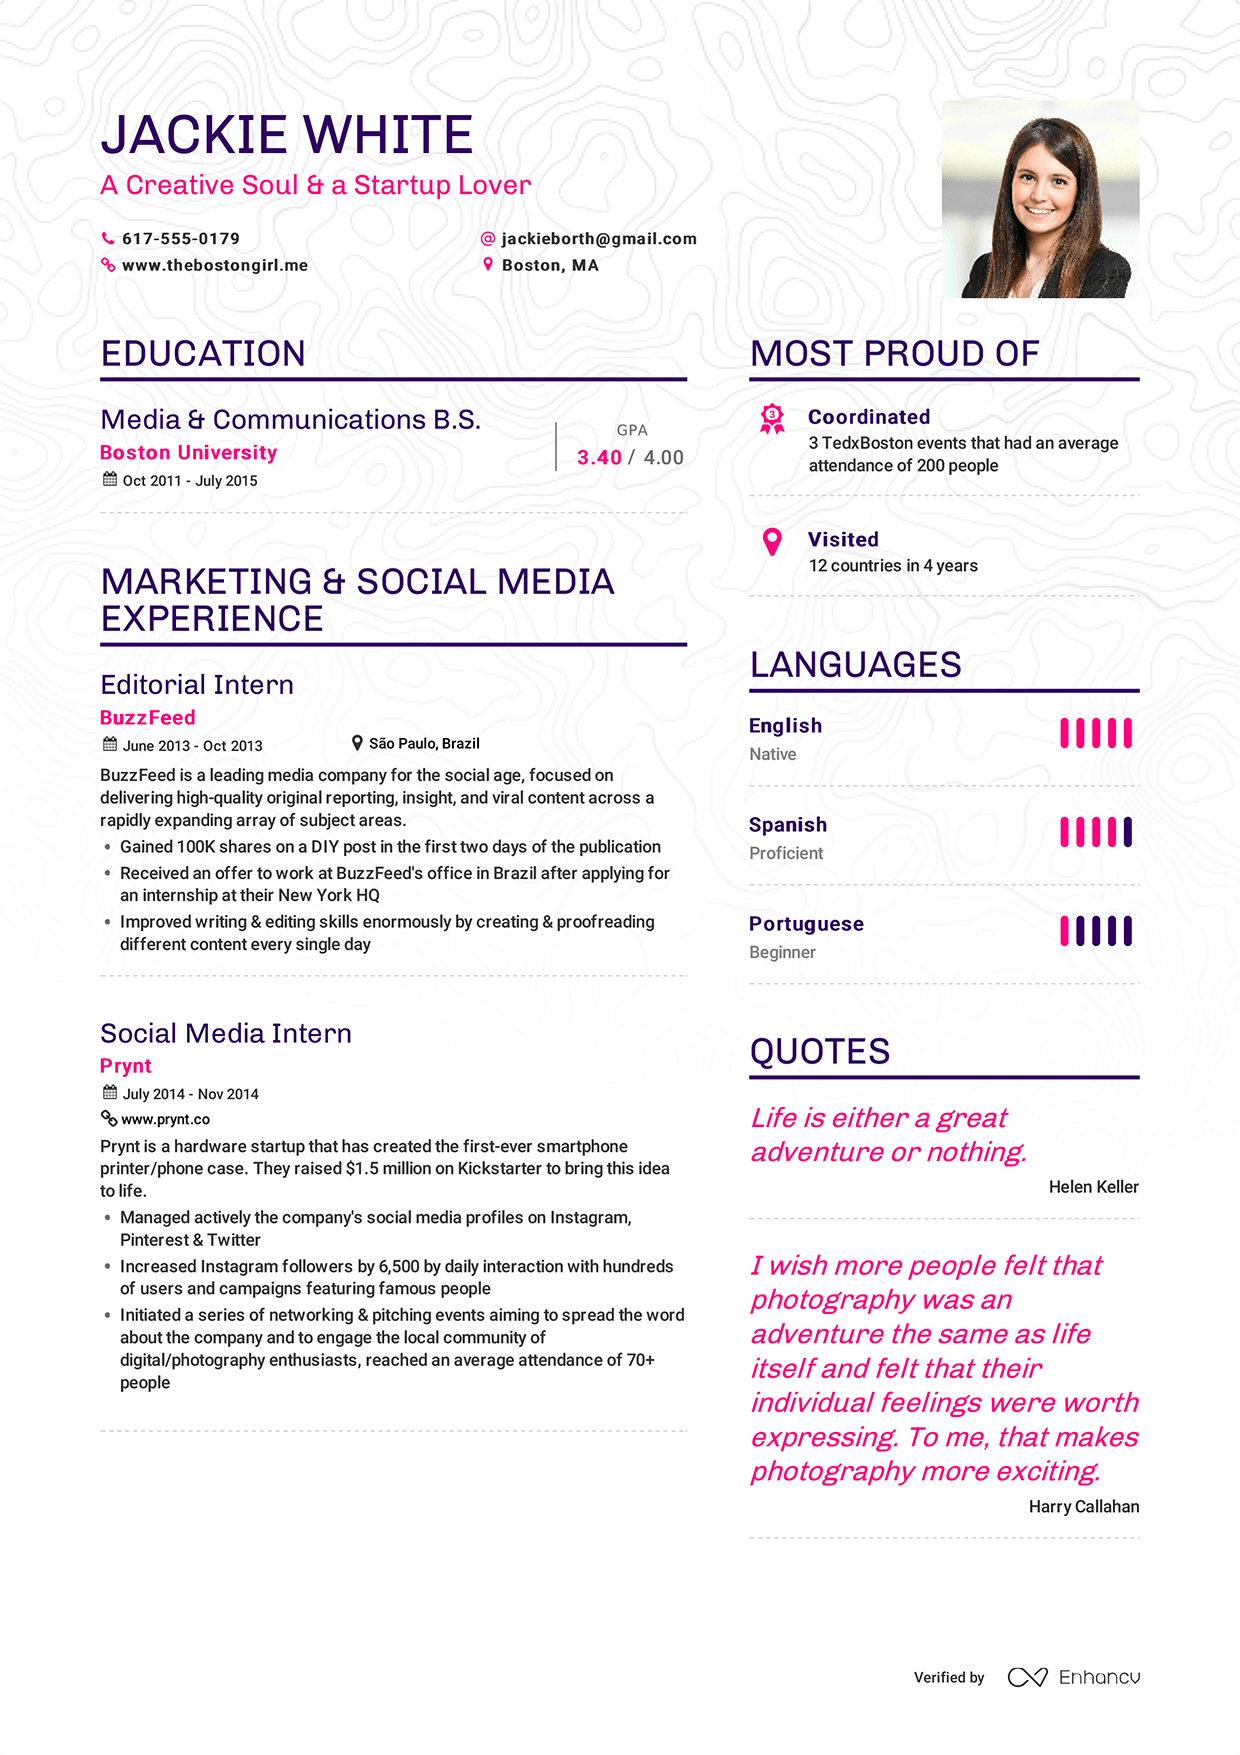 enhancv example resume jackie white page 1